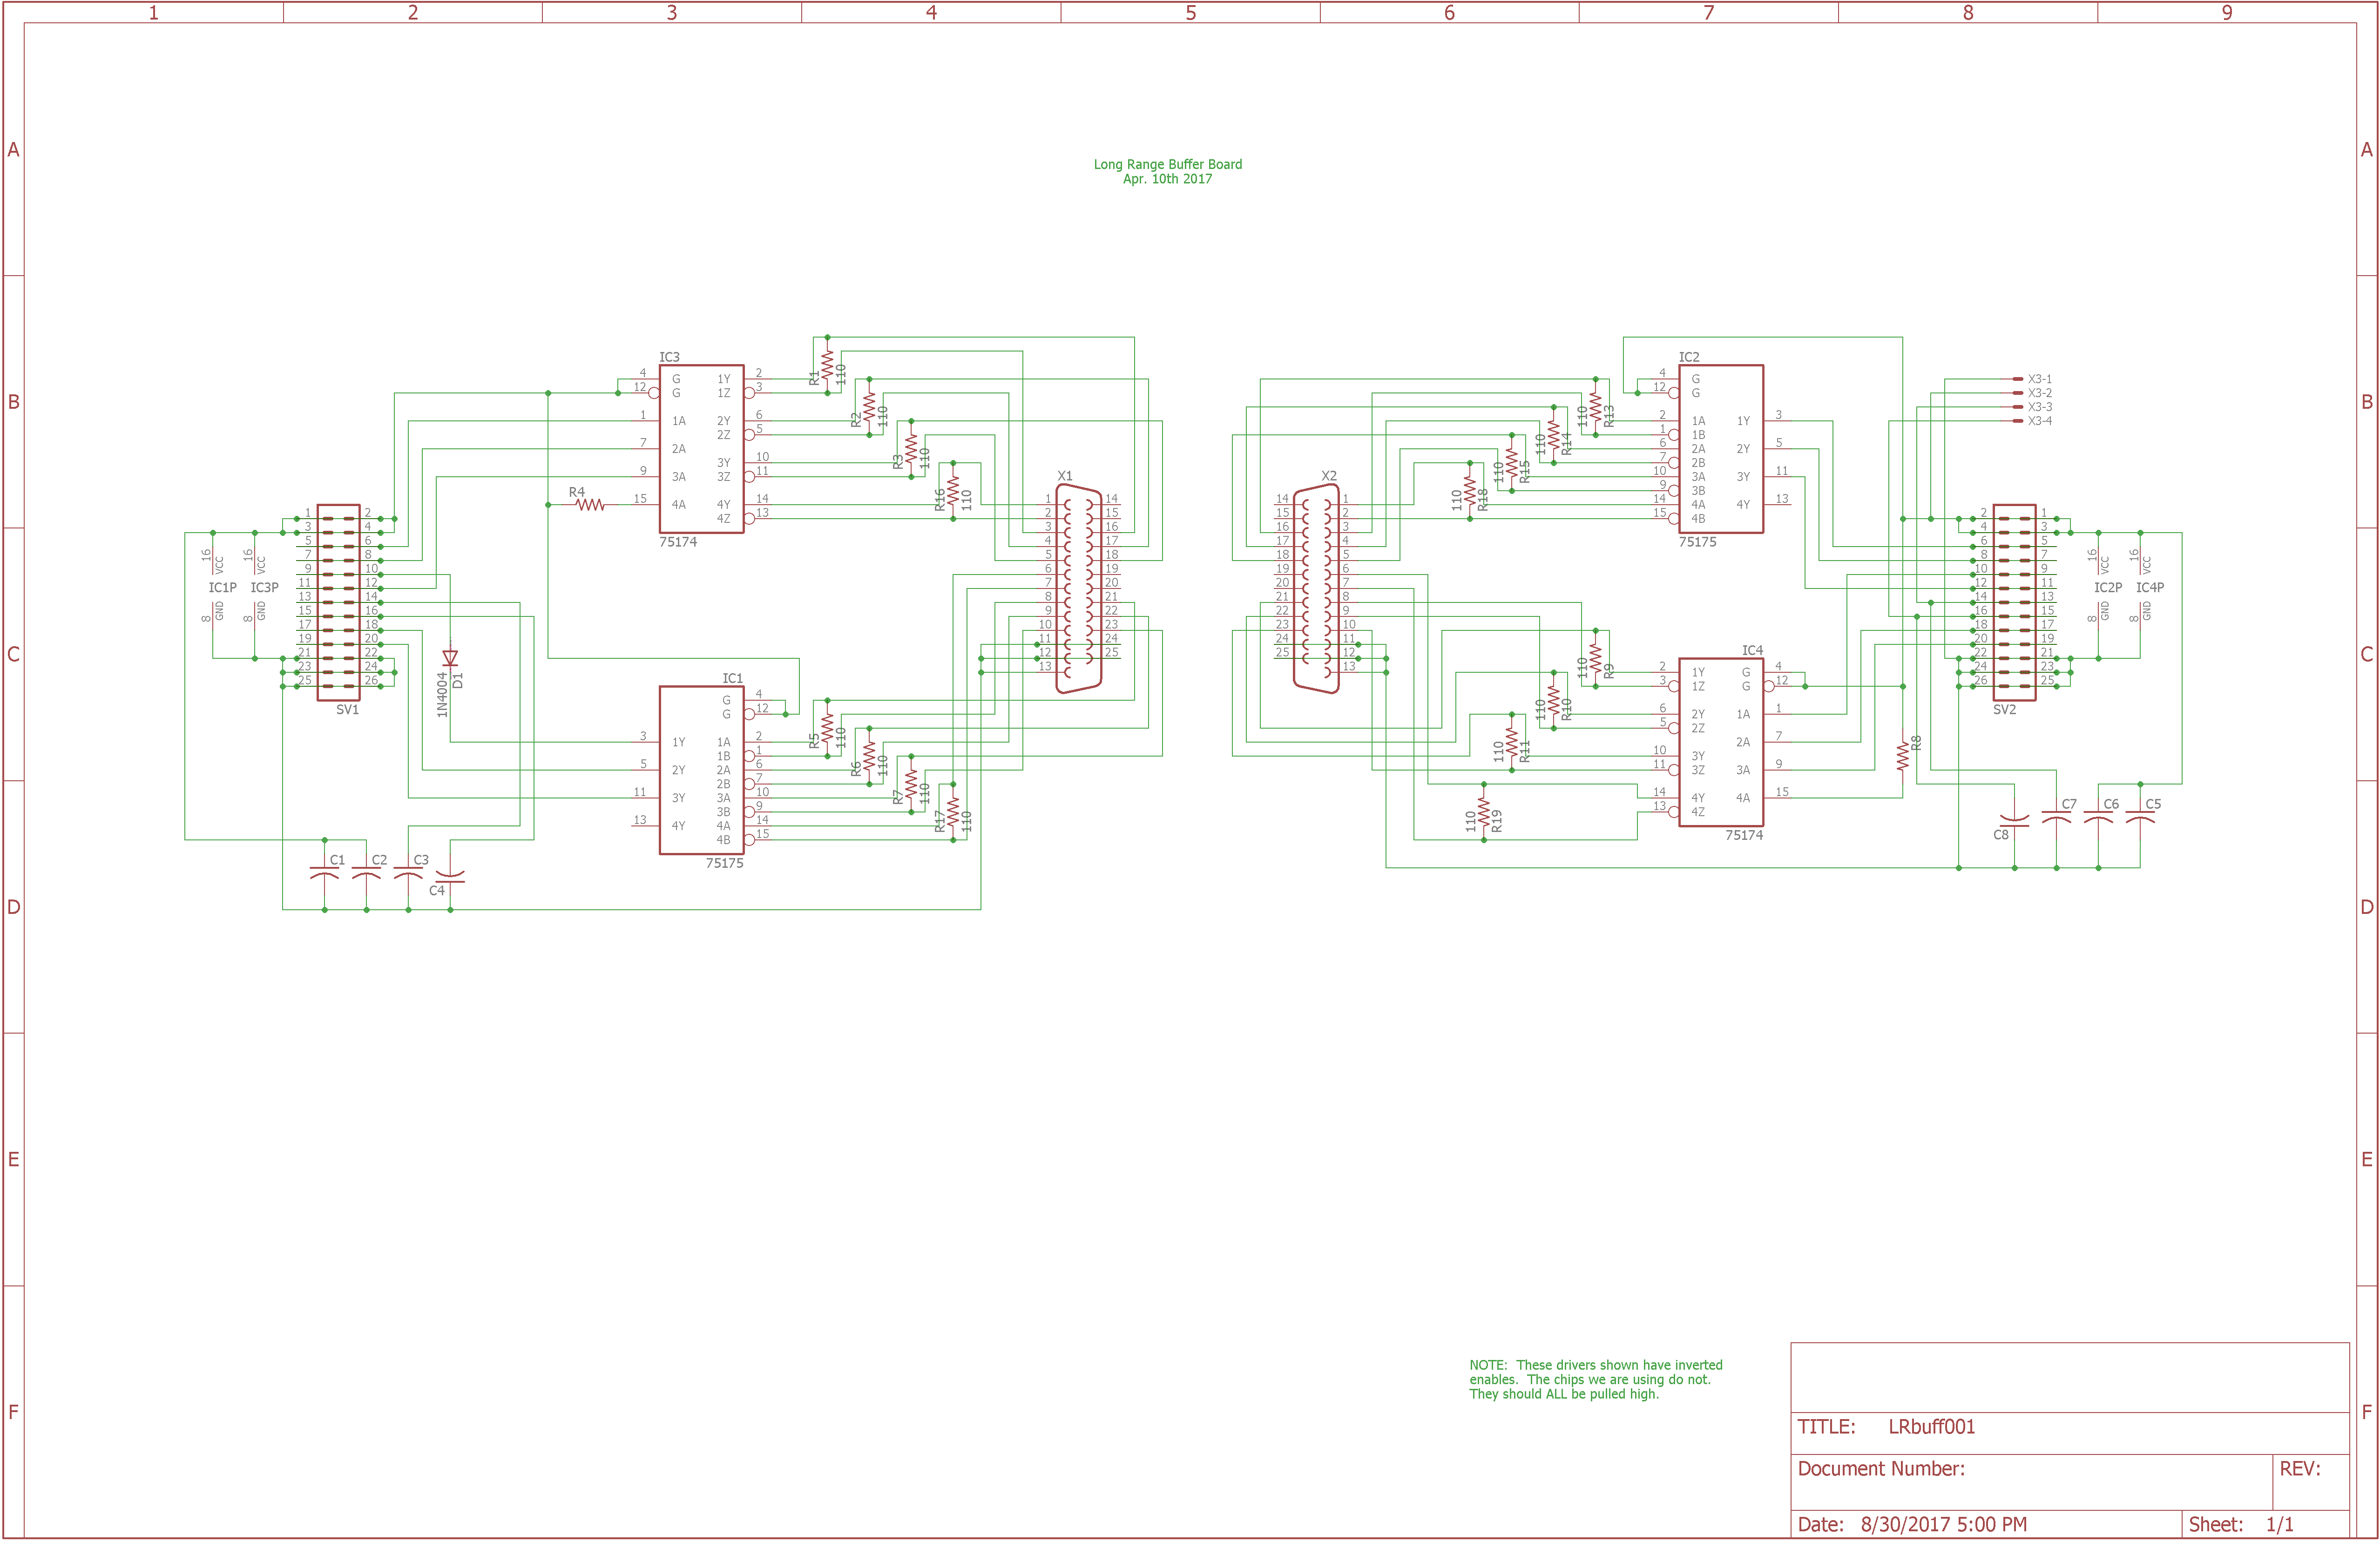 And the schematic